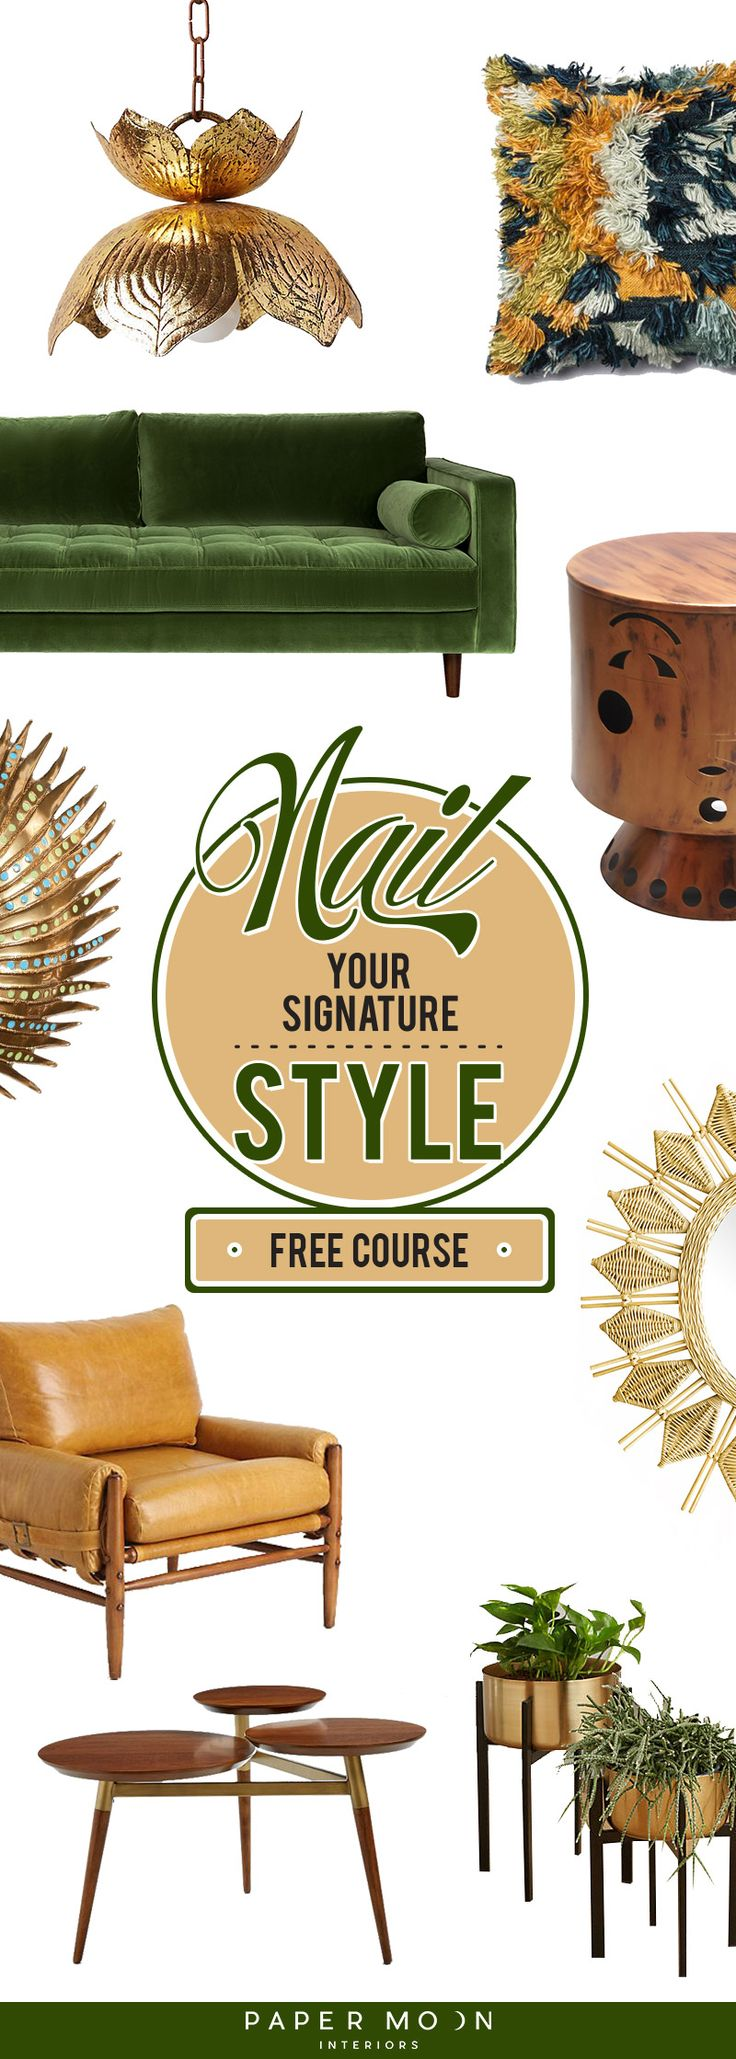 Its Time To Nail Your Signature Interior Design Style With This Free Email Course You